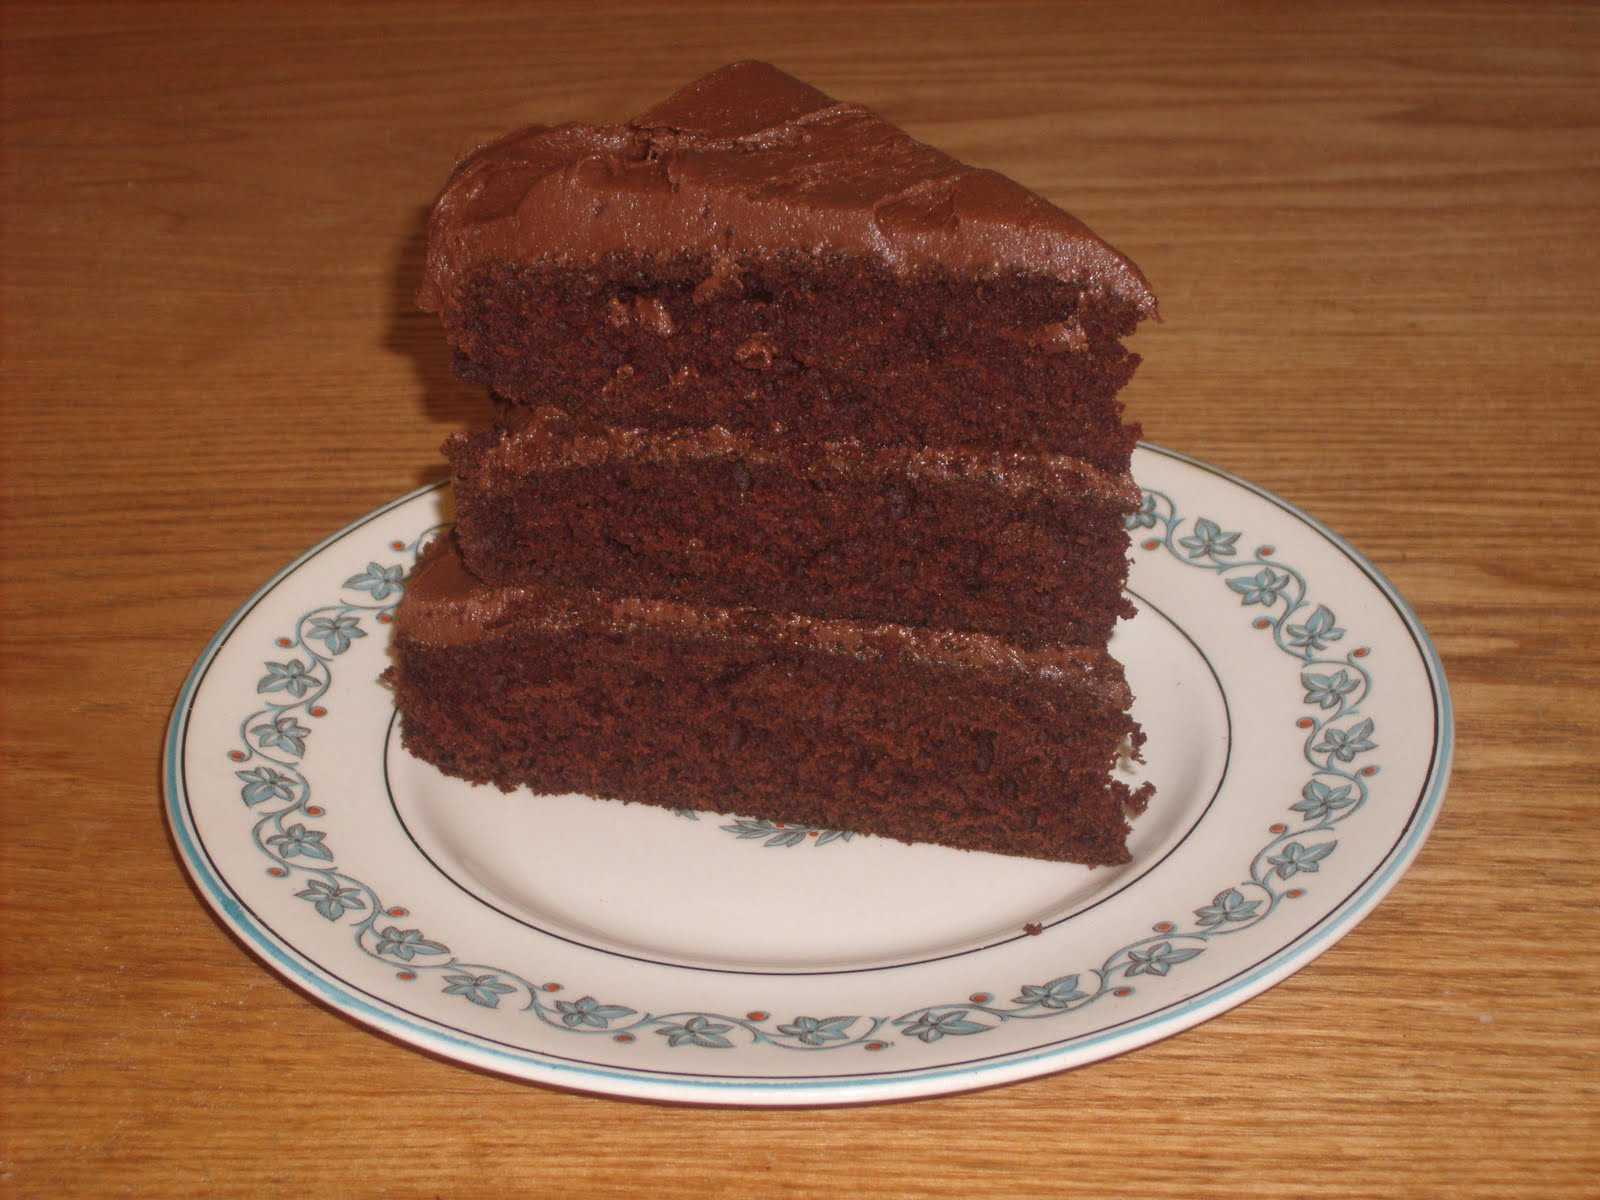 Delicious Cake Images : Gamers Fridge: Delicious Chocolate Cake